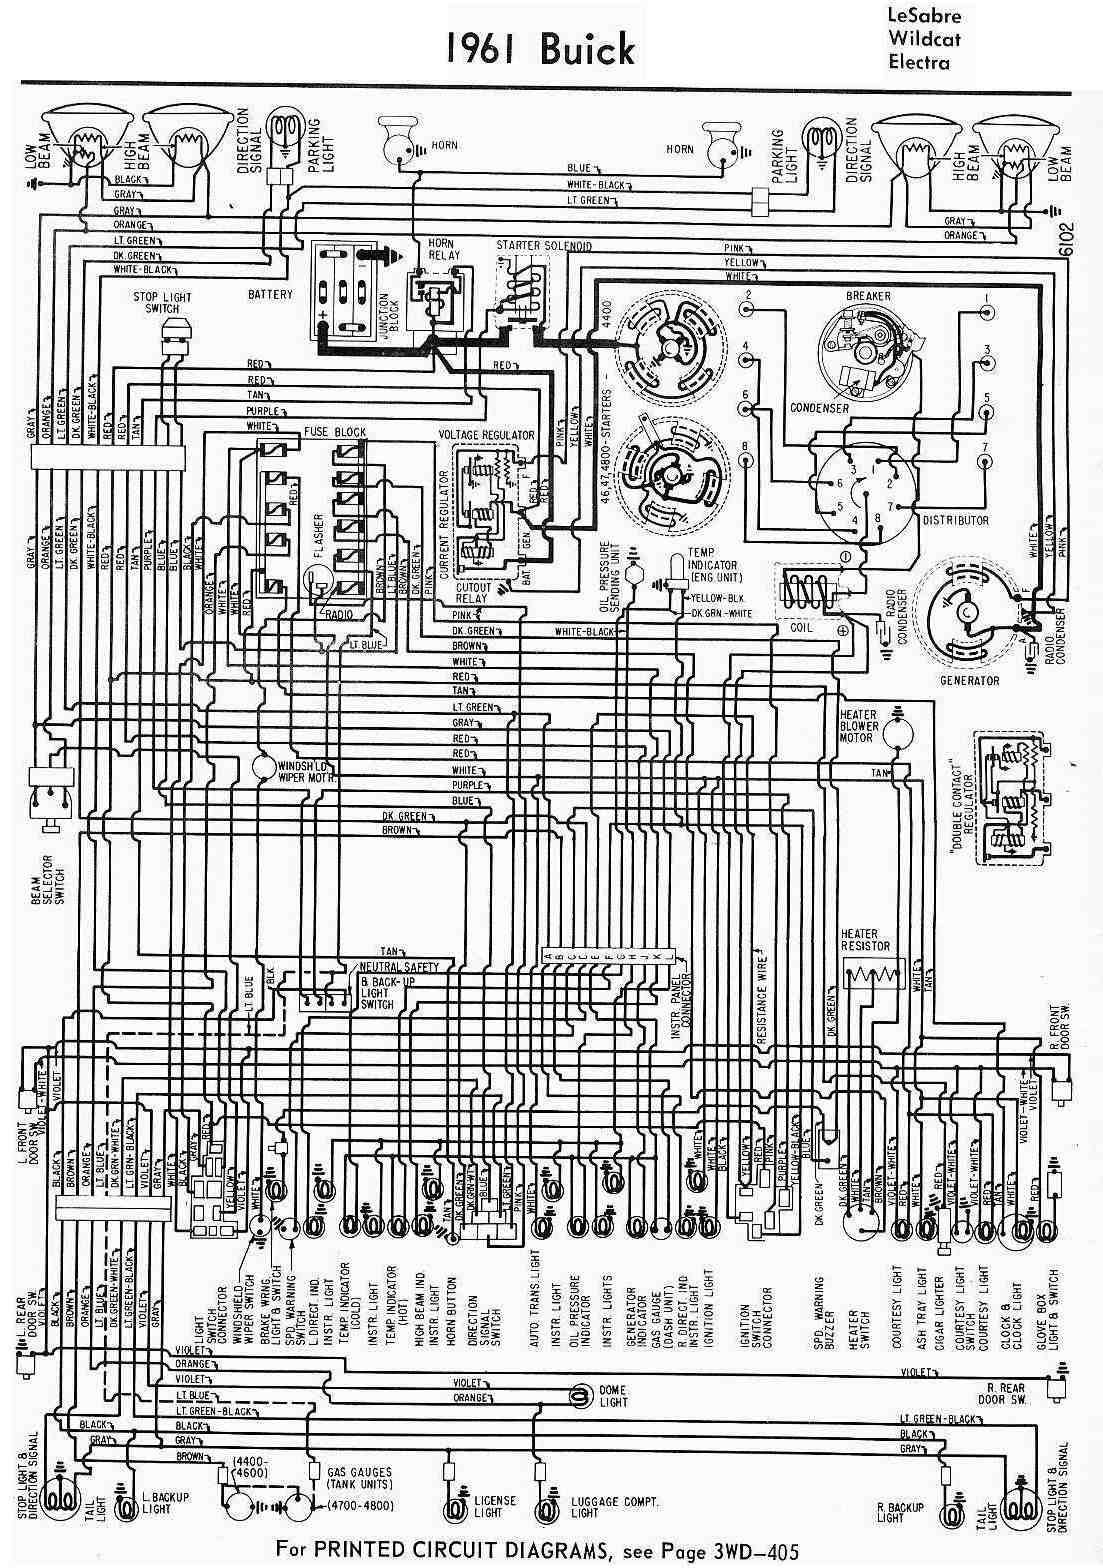 a6441862bfcf99130fb7ff5756998744 1948 studebaker wiring diagram manual repair with engine studebaker wiring diagrams at cos-gaming.co